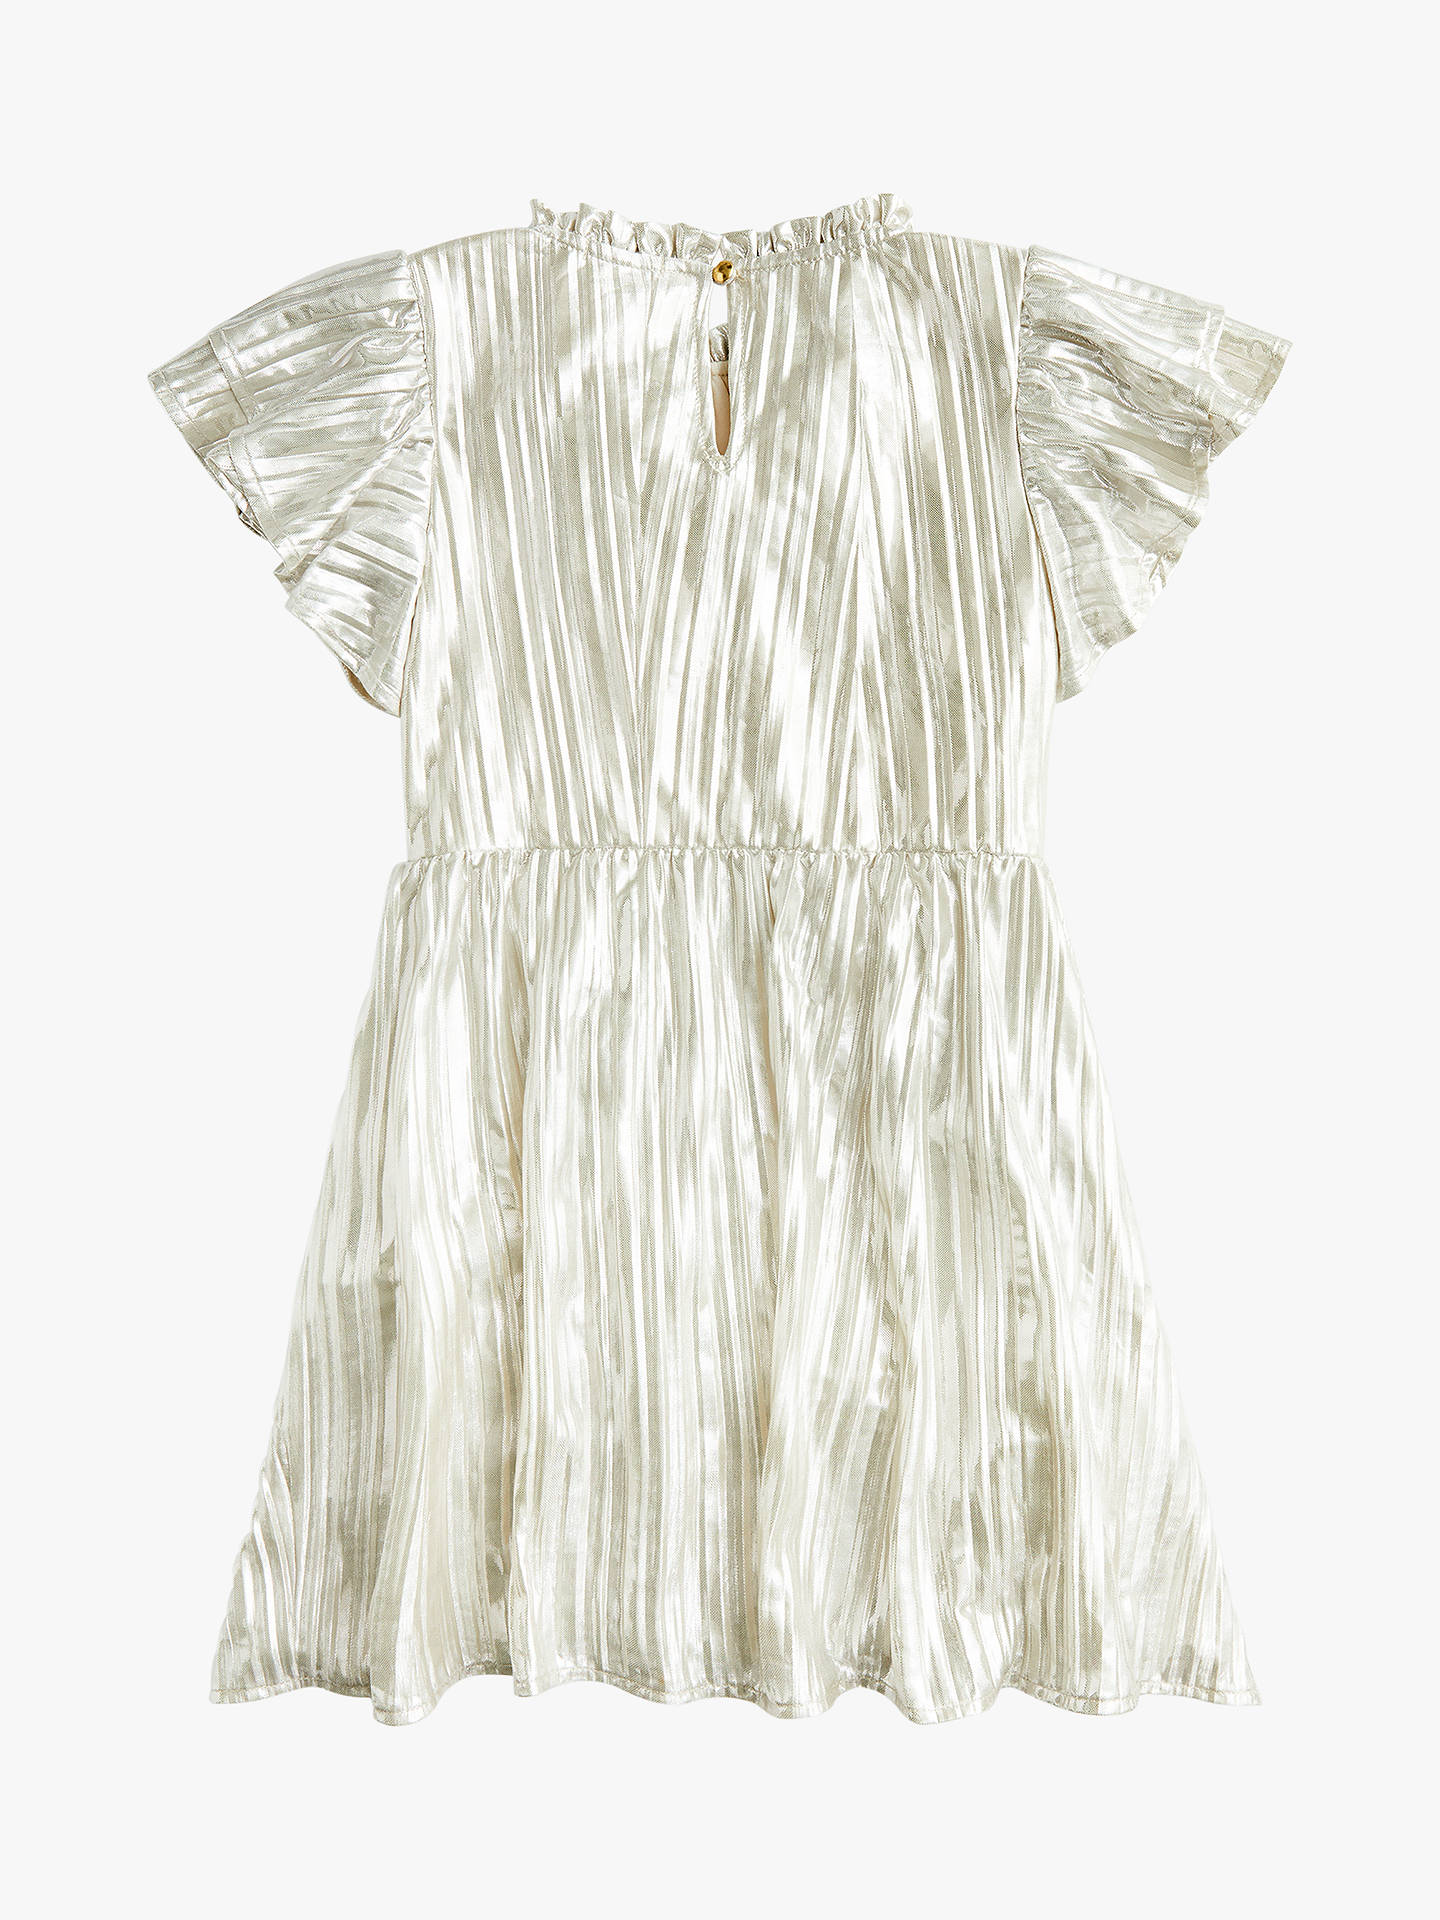 18043c9f255 Buy crewcuts by J.Crew Girls Shimmery Pleated Dress